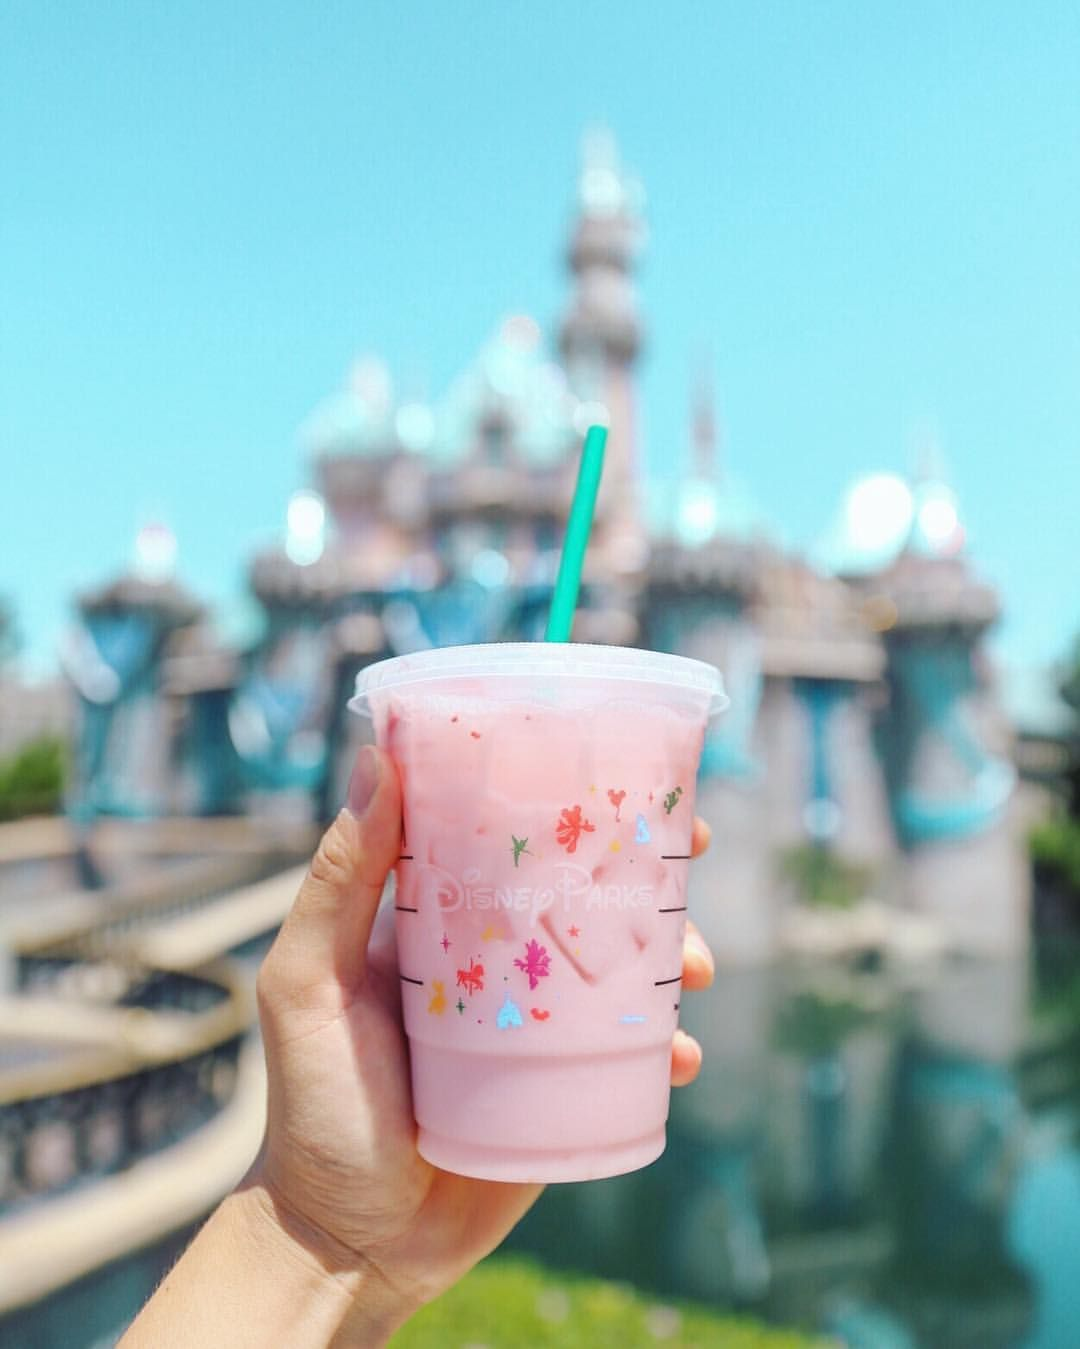 Disney Worlds Newest Drink Has Instagram Freaking Out Disney Worlds Newest Drink Has Instagram Freaking Out new photo